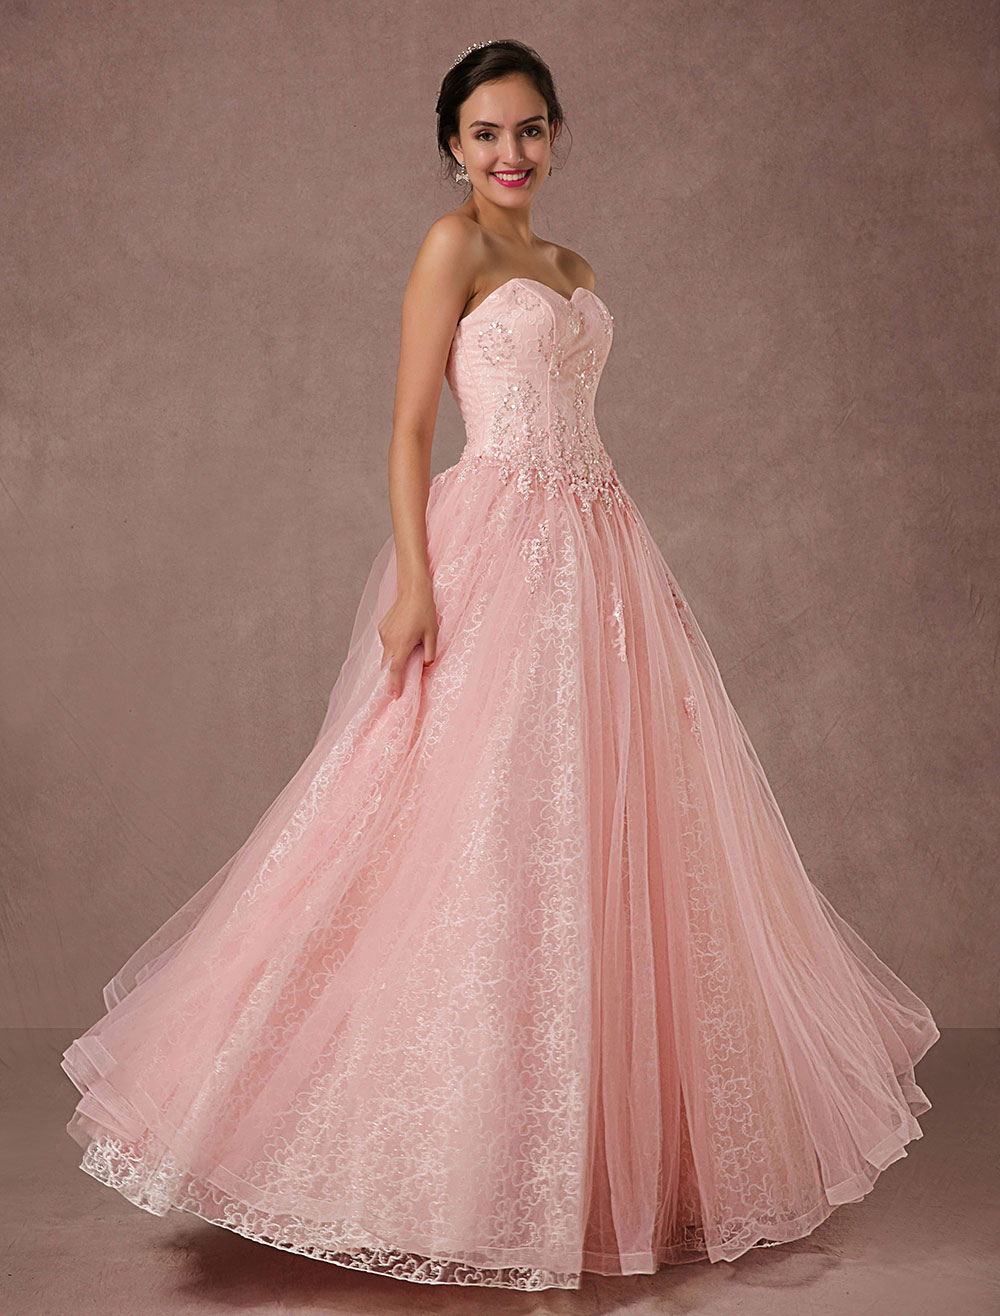 Pink Lace Wedding Dress Tulle Strapless Bridal Gown Floor-length A-line Beading Prom Dress Backless Luxury Pageant Dress (Pink Wedding Dress) photo